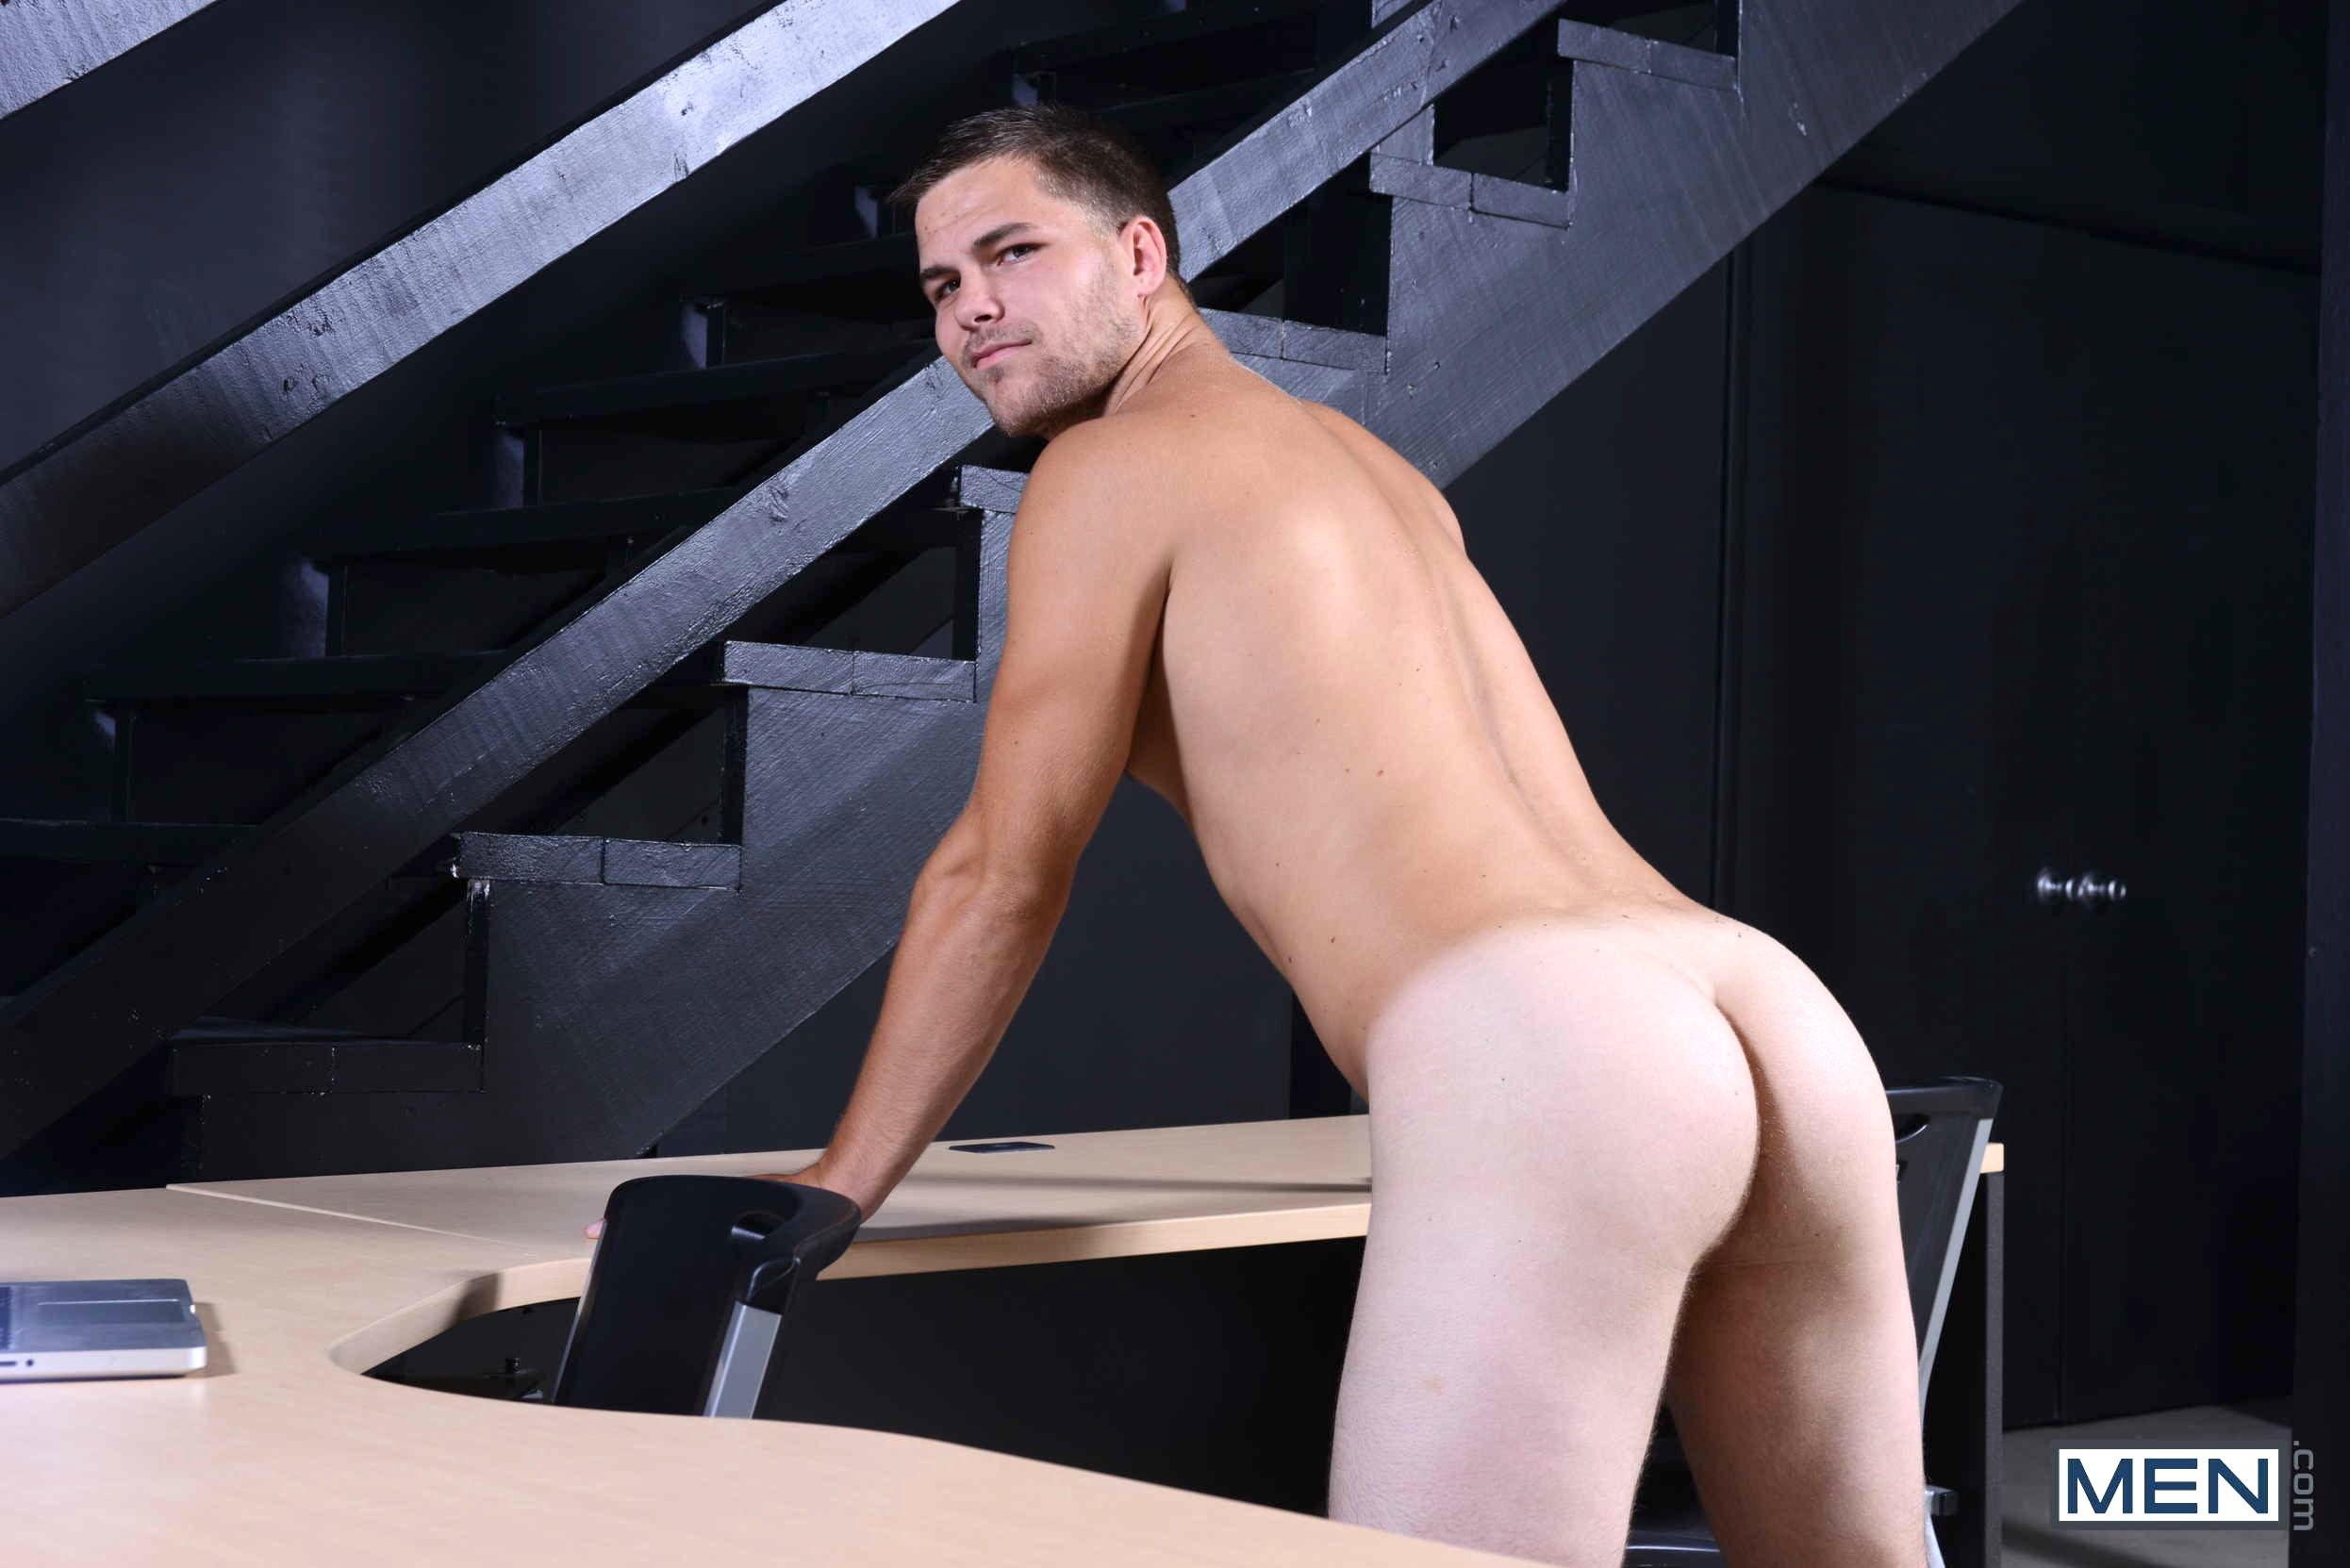 Jimmy johnson gets his straight virgin ass stretched open colby jansen in a gay porn scene for top to bottom